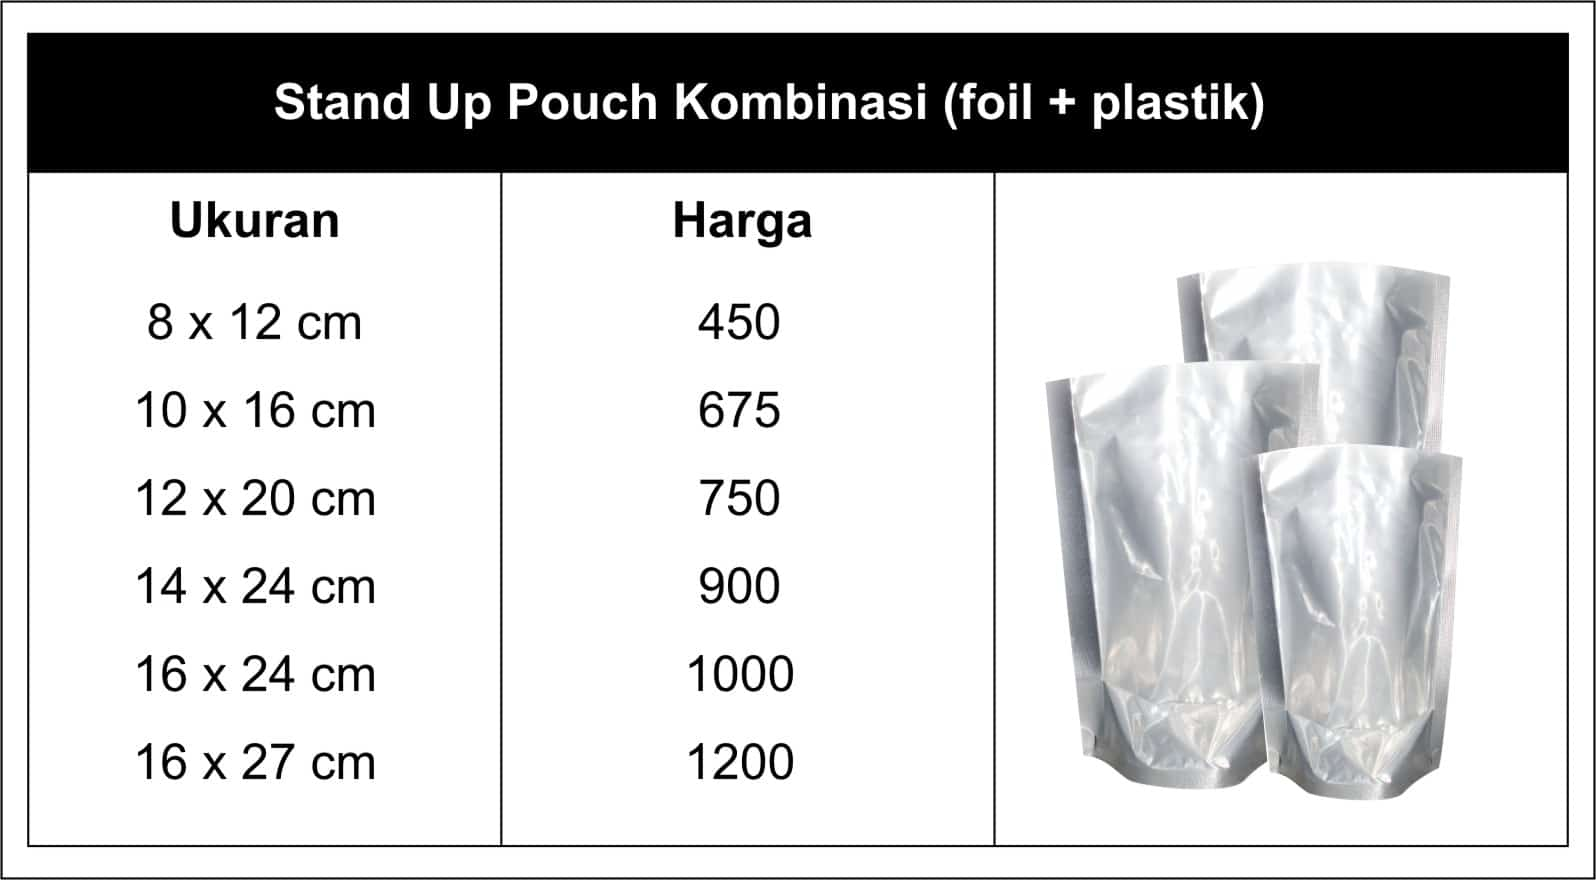 stand up pouch kombinasi foil plastik - stand up pouch kombinasi foil + plastik (Minimum Order 1.000 pcs)